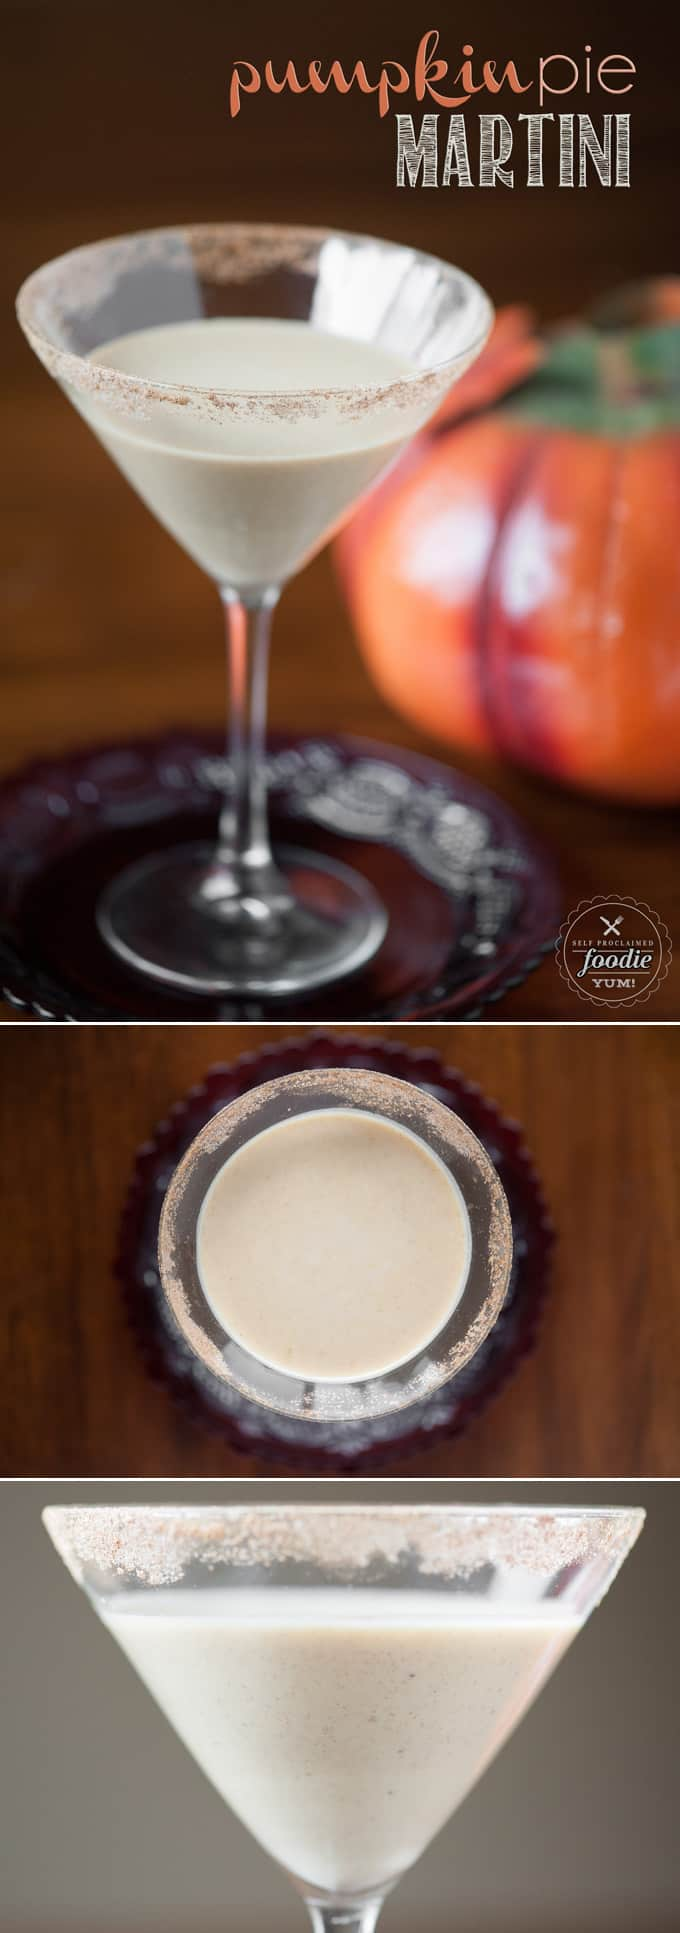 This Pumpkin Pie Martini is a perfect Fall cocktail. It is so rich and creamy that it really does taste like pumpkin pie, but with a boozy kick.